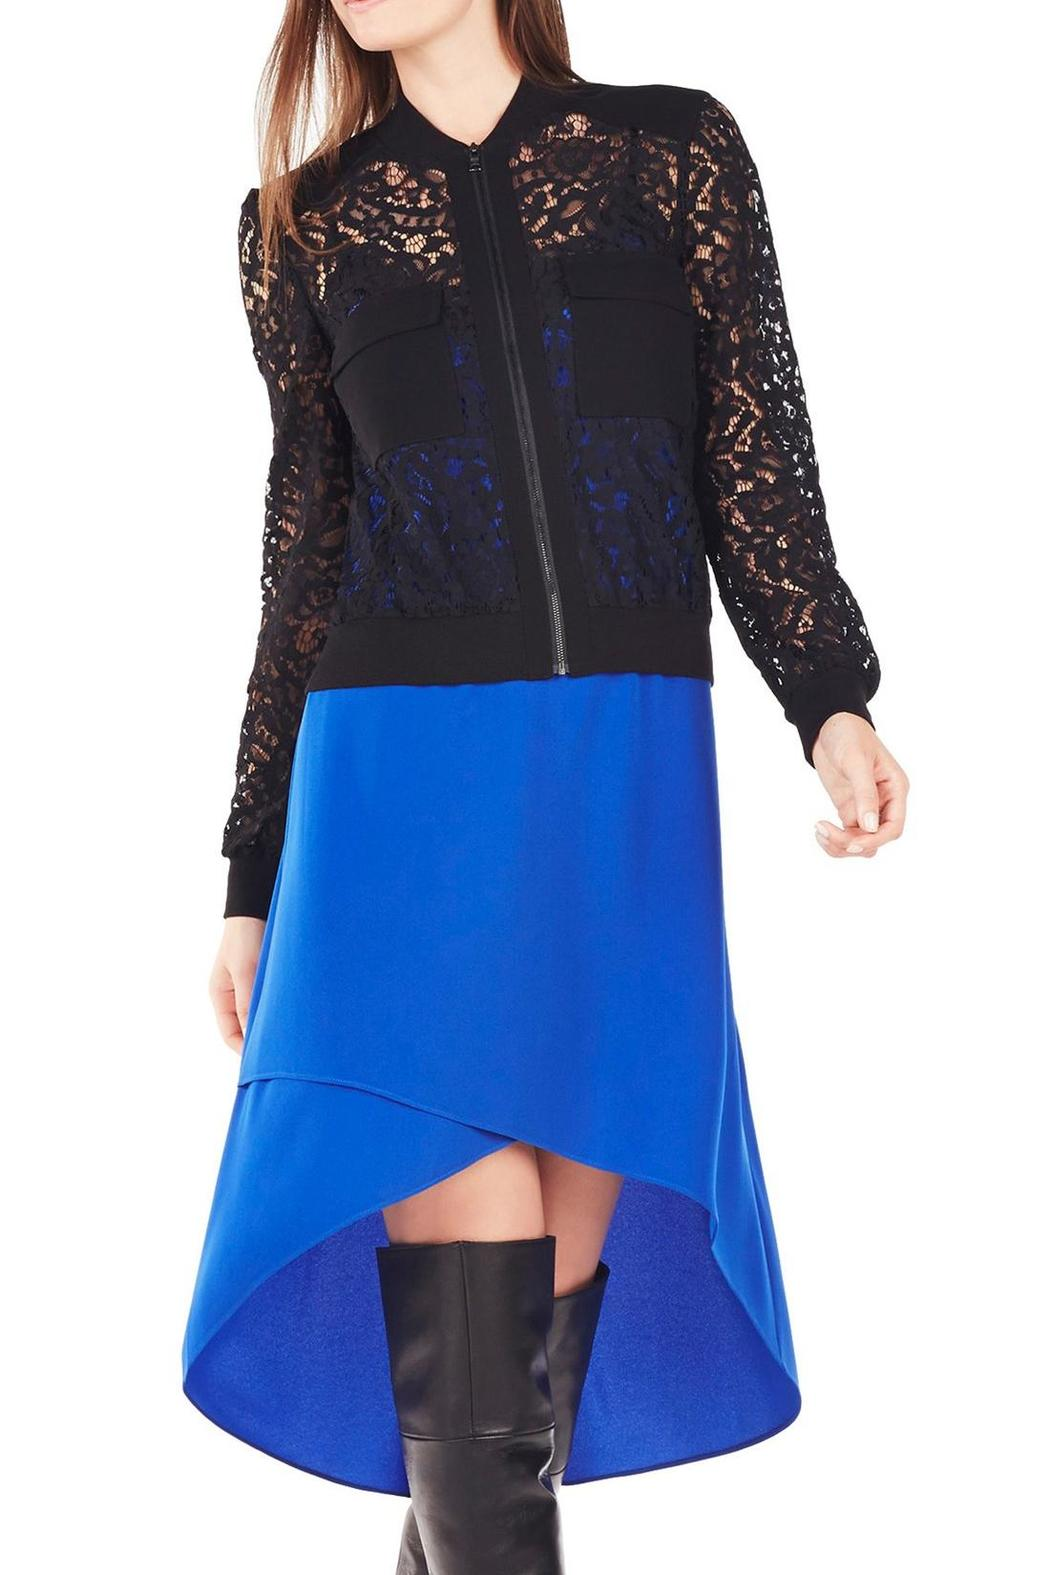 BCBG Max Azria Nicolle Lace Jacket from Back Bay by Max ...